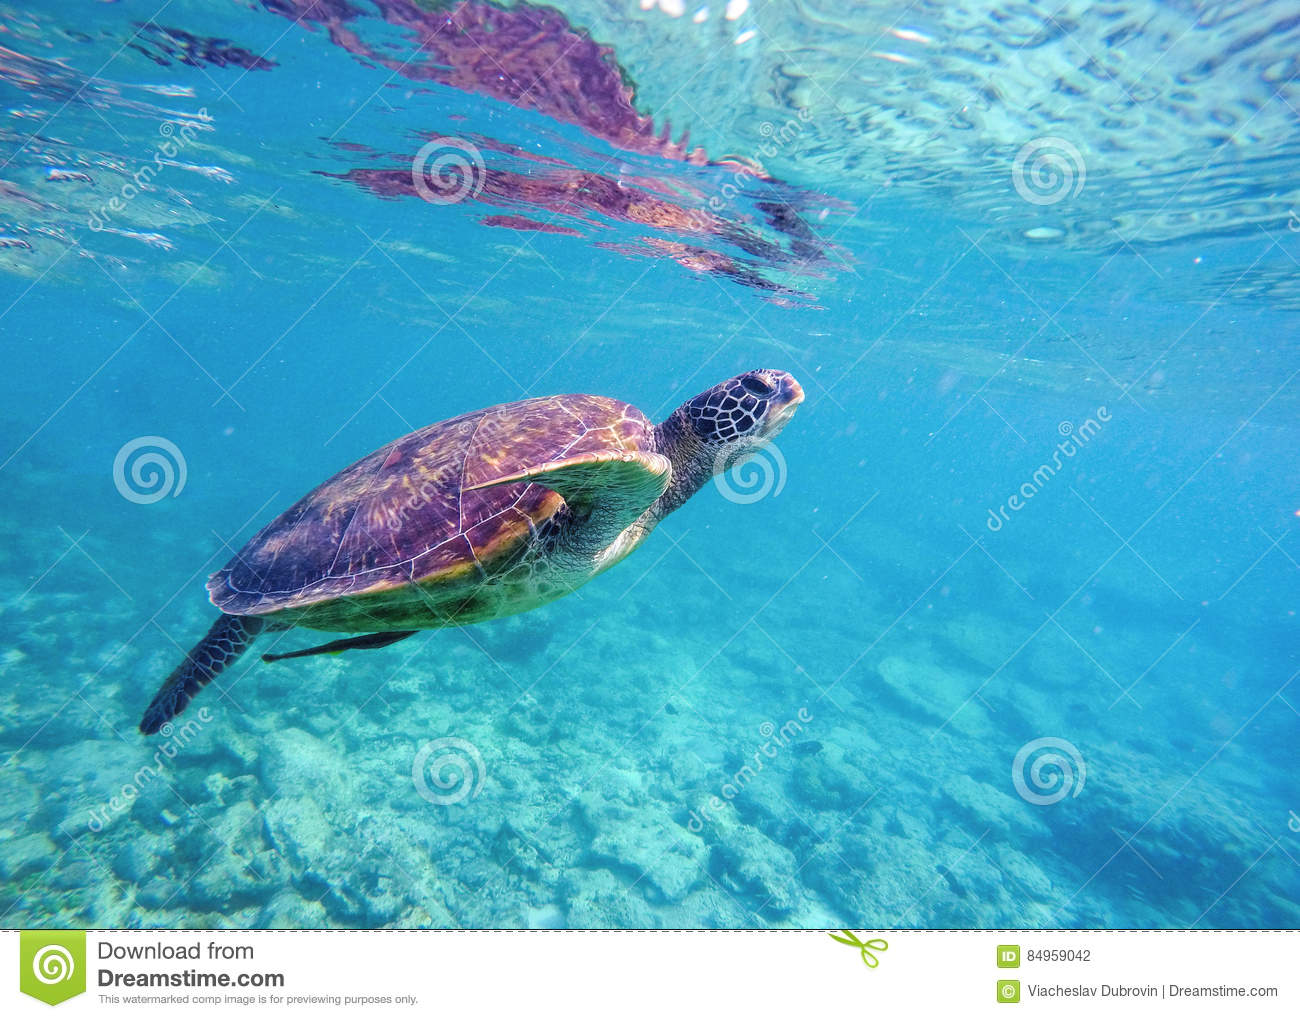 Underwater Image Of Sea Turtle For Banner Template With Text Place